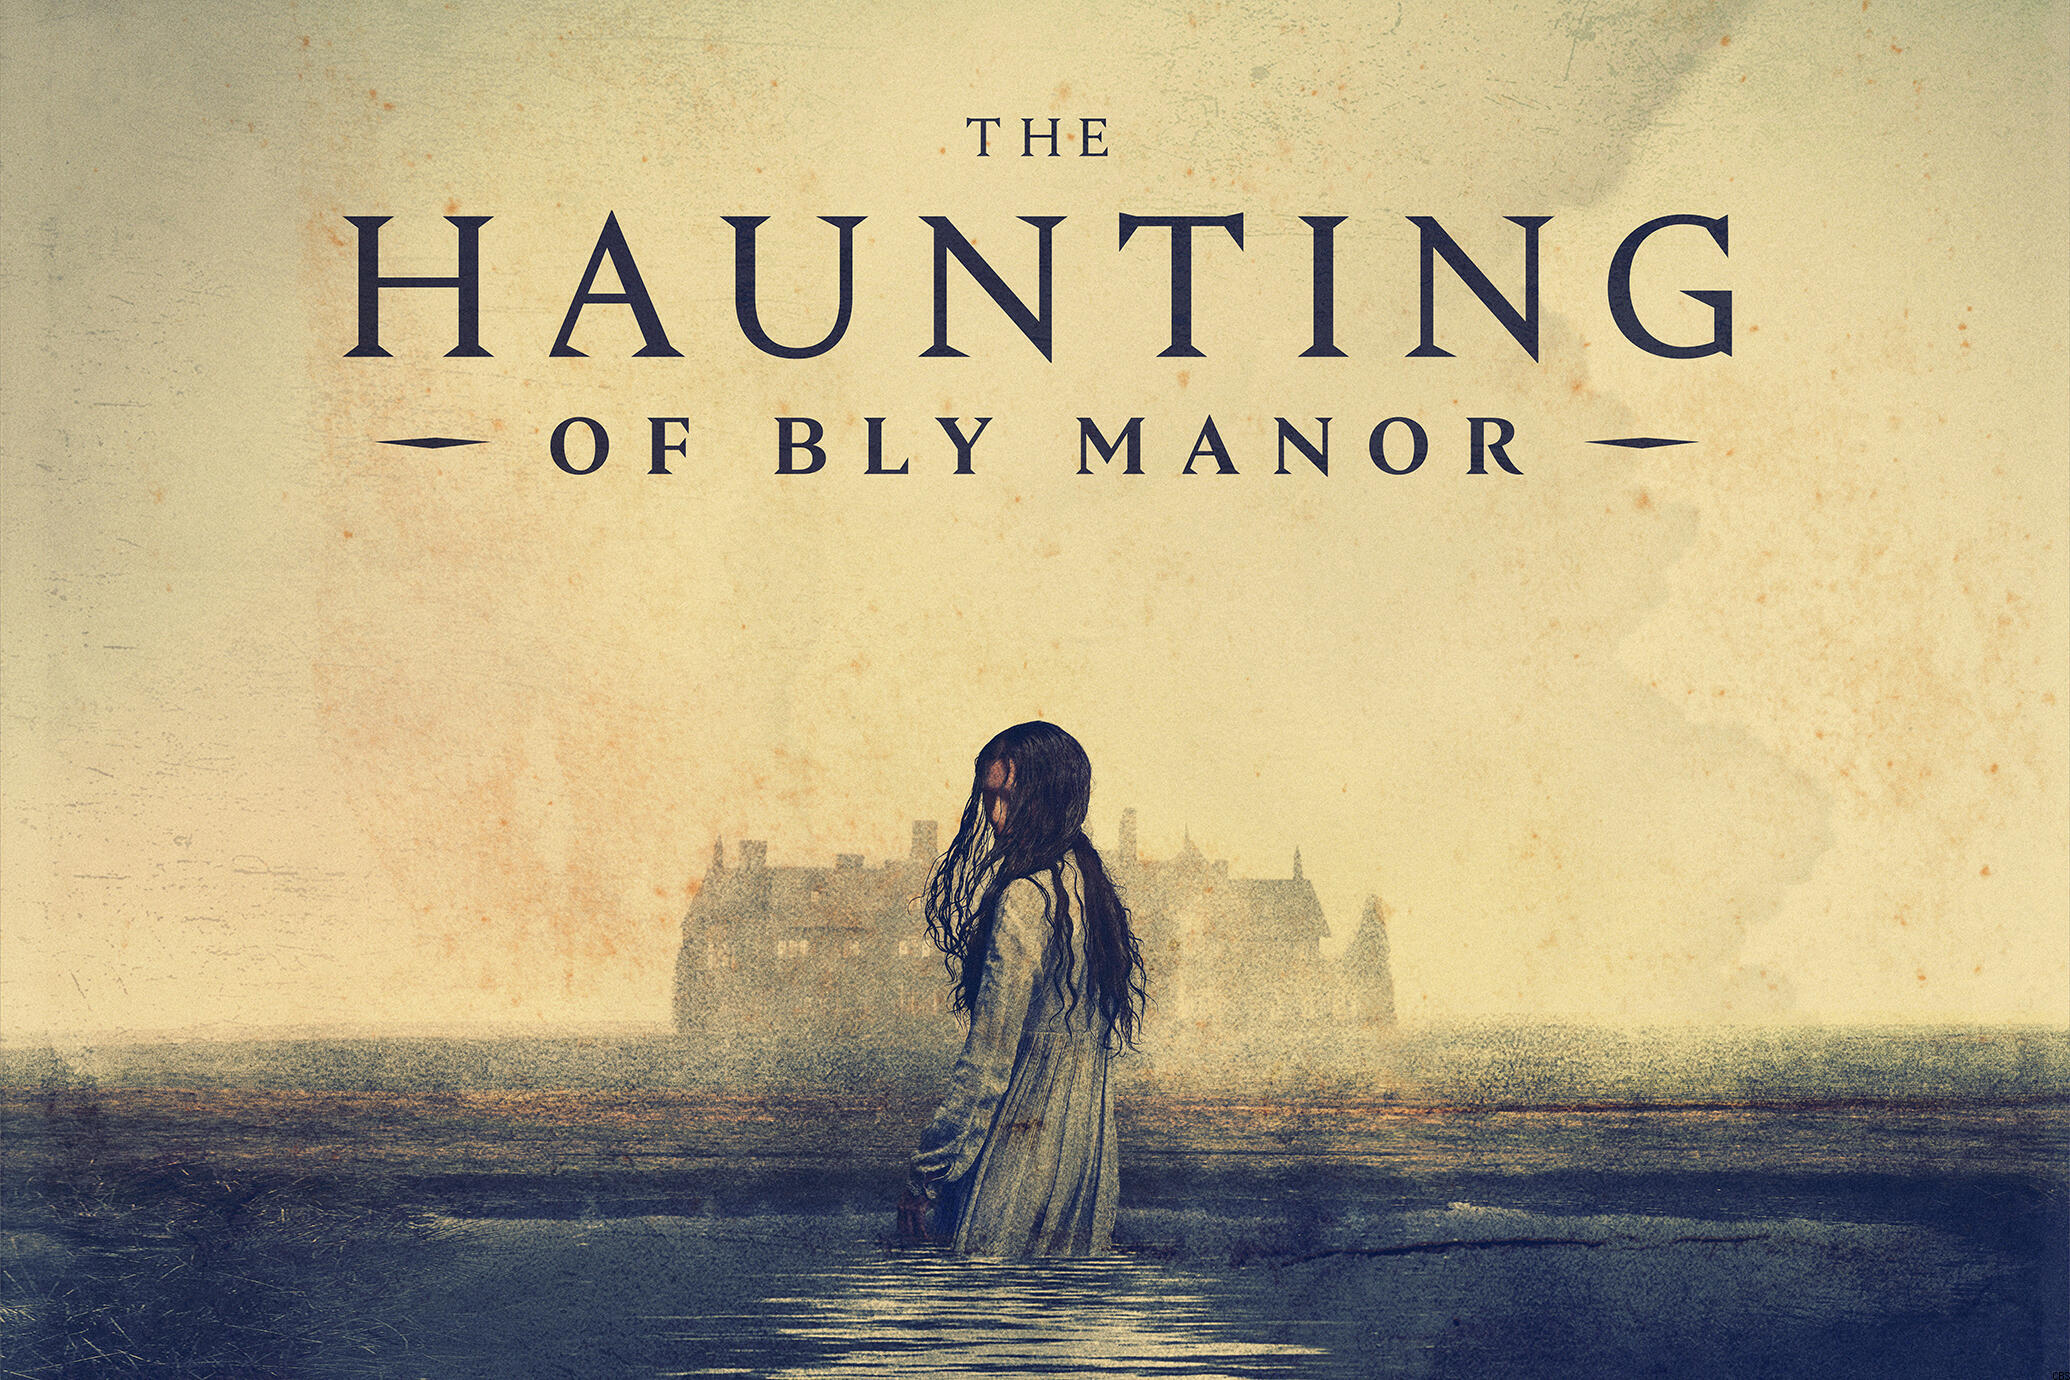 The Haunting of Bly Manor Season 1 Episode 9 Subtitle (English Srt) Download